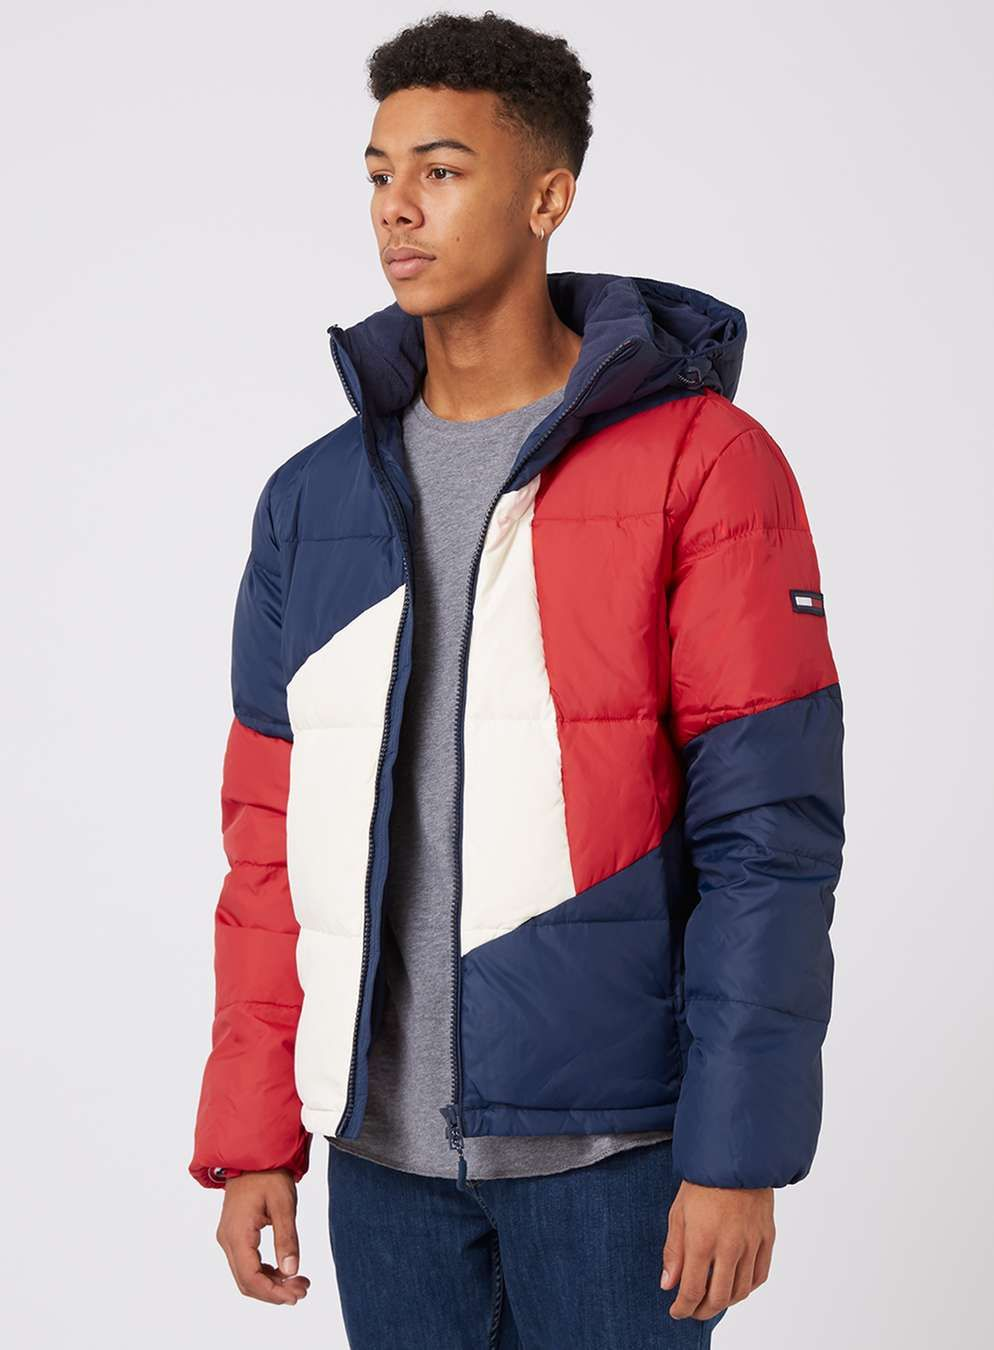 544cb32f3 TOMMY HILFIGER Padded Colour Block Jacket - Men s Coats   Jackets - Clothing  - TOPMAN